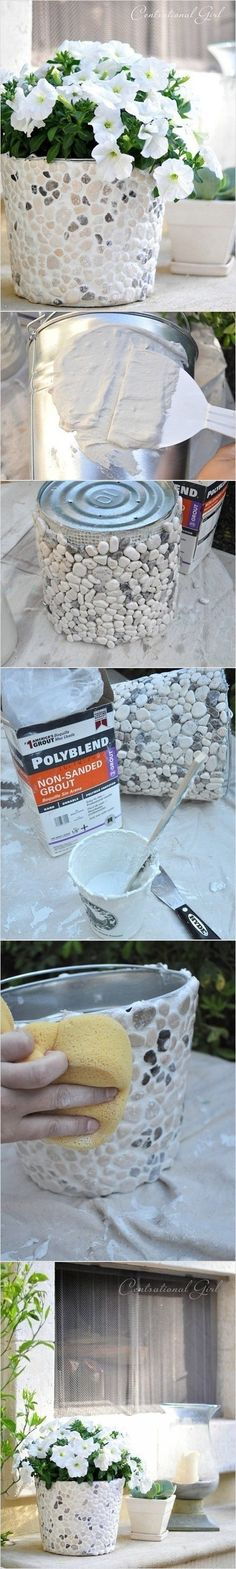 Old paint can to pebble planter.